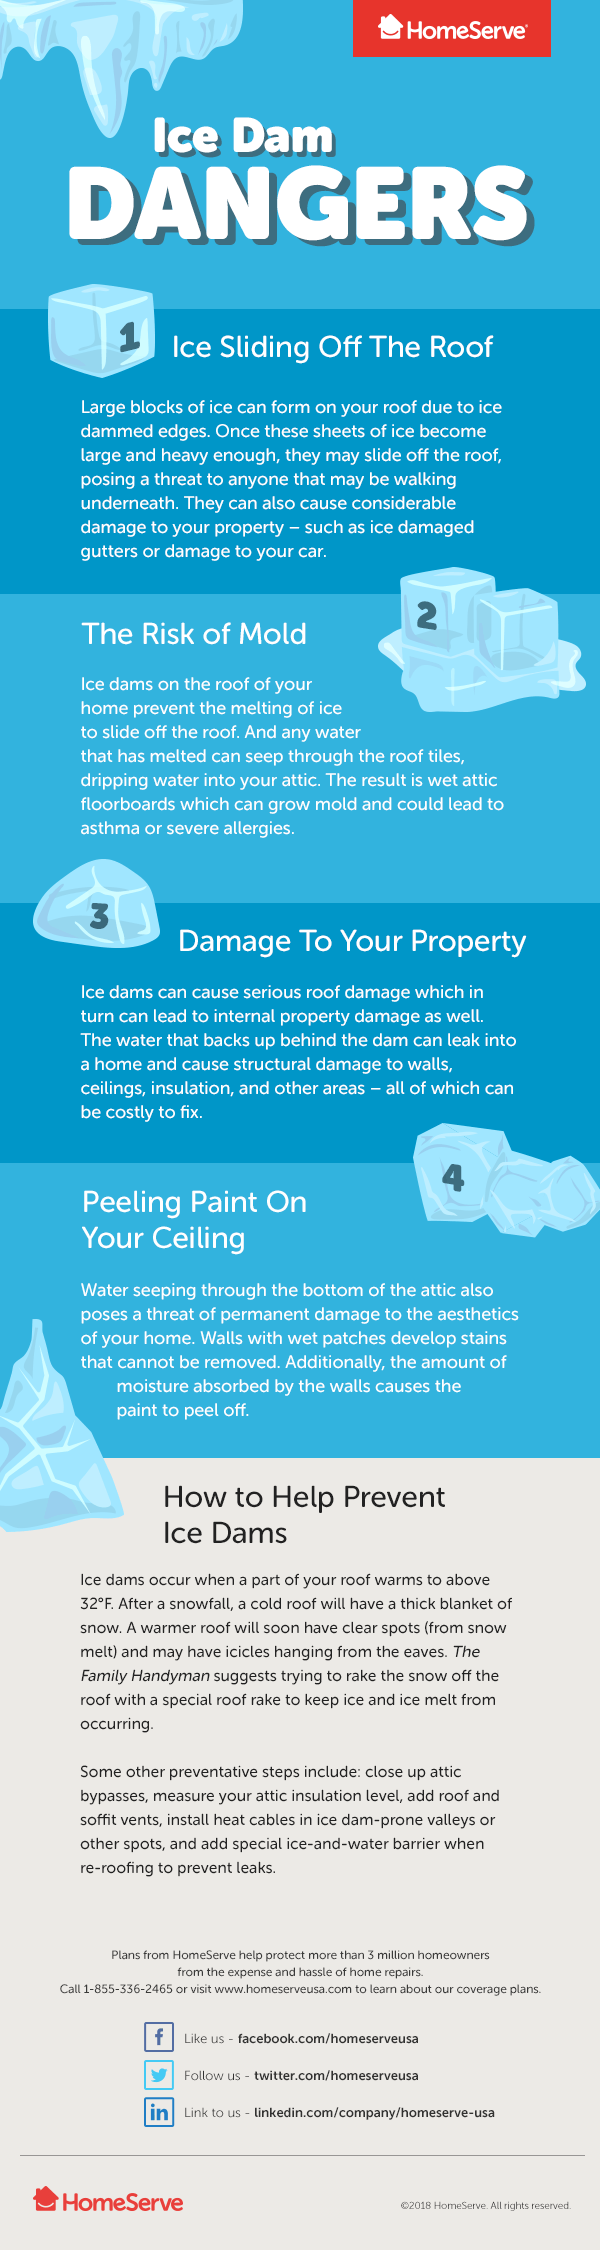 Ice Dam Dangers Infographic from HomeServe